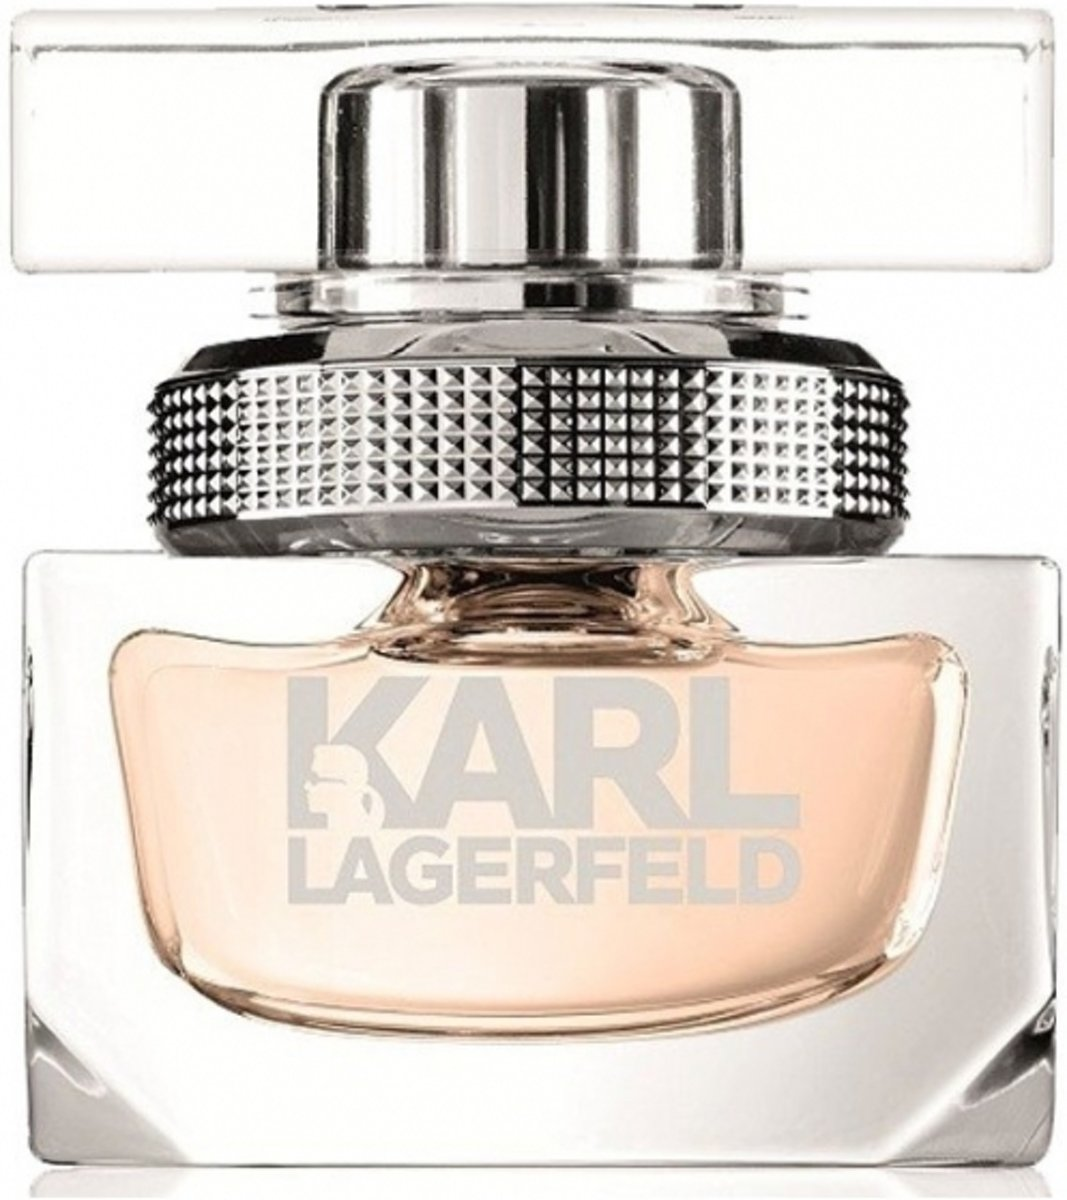 Karl Lagerfeld - 25 ml - Eau de Parfum - for Women